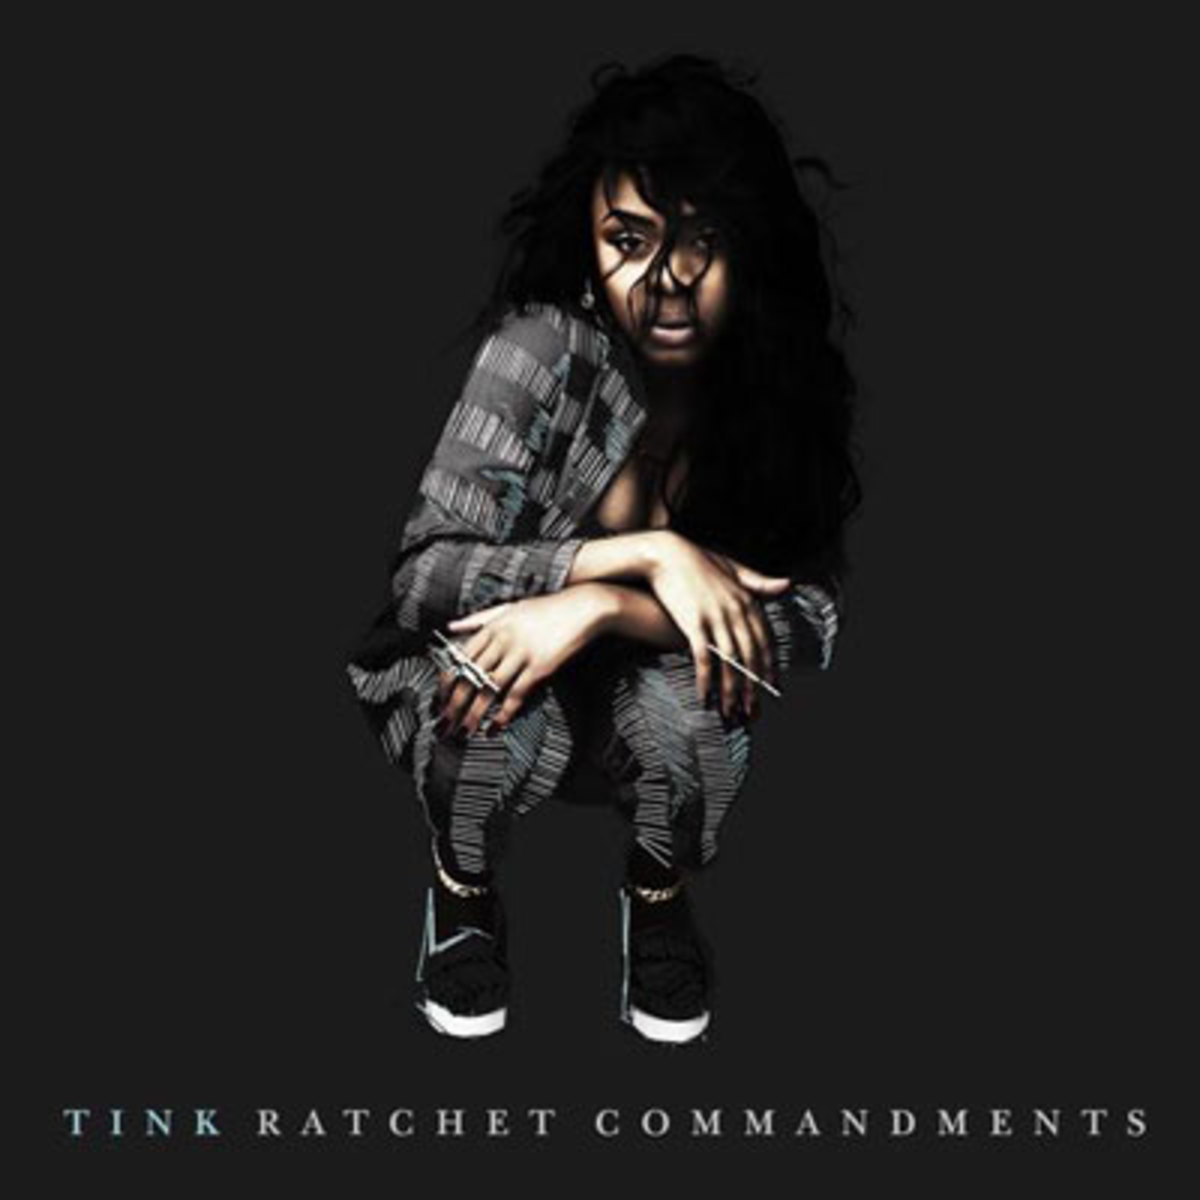 tink-ratchet-commandments.jpg